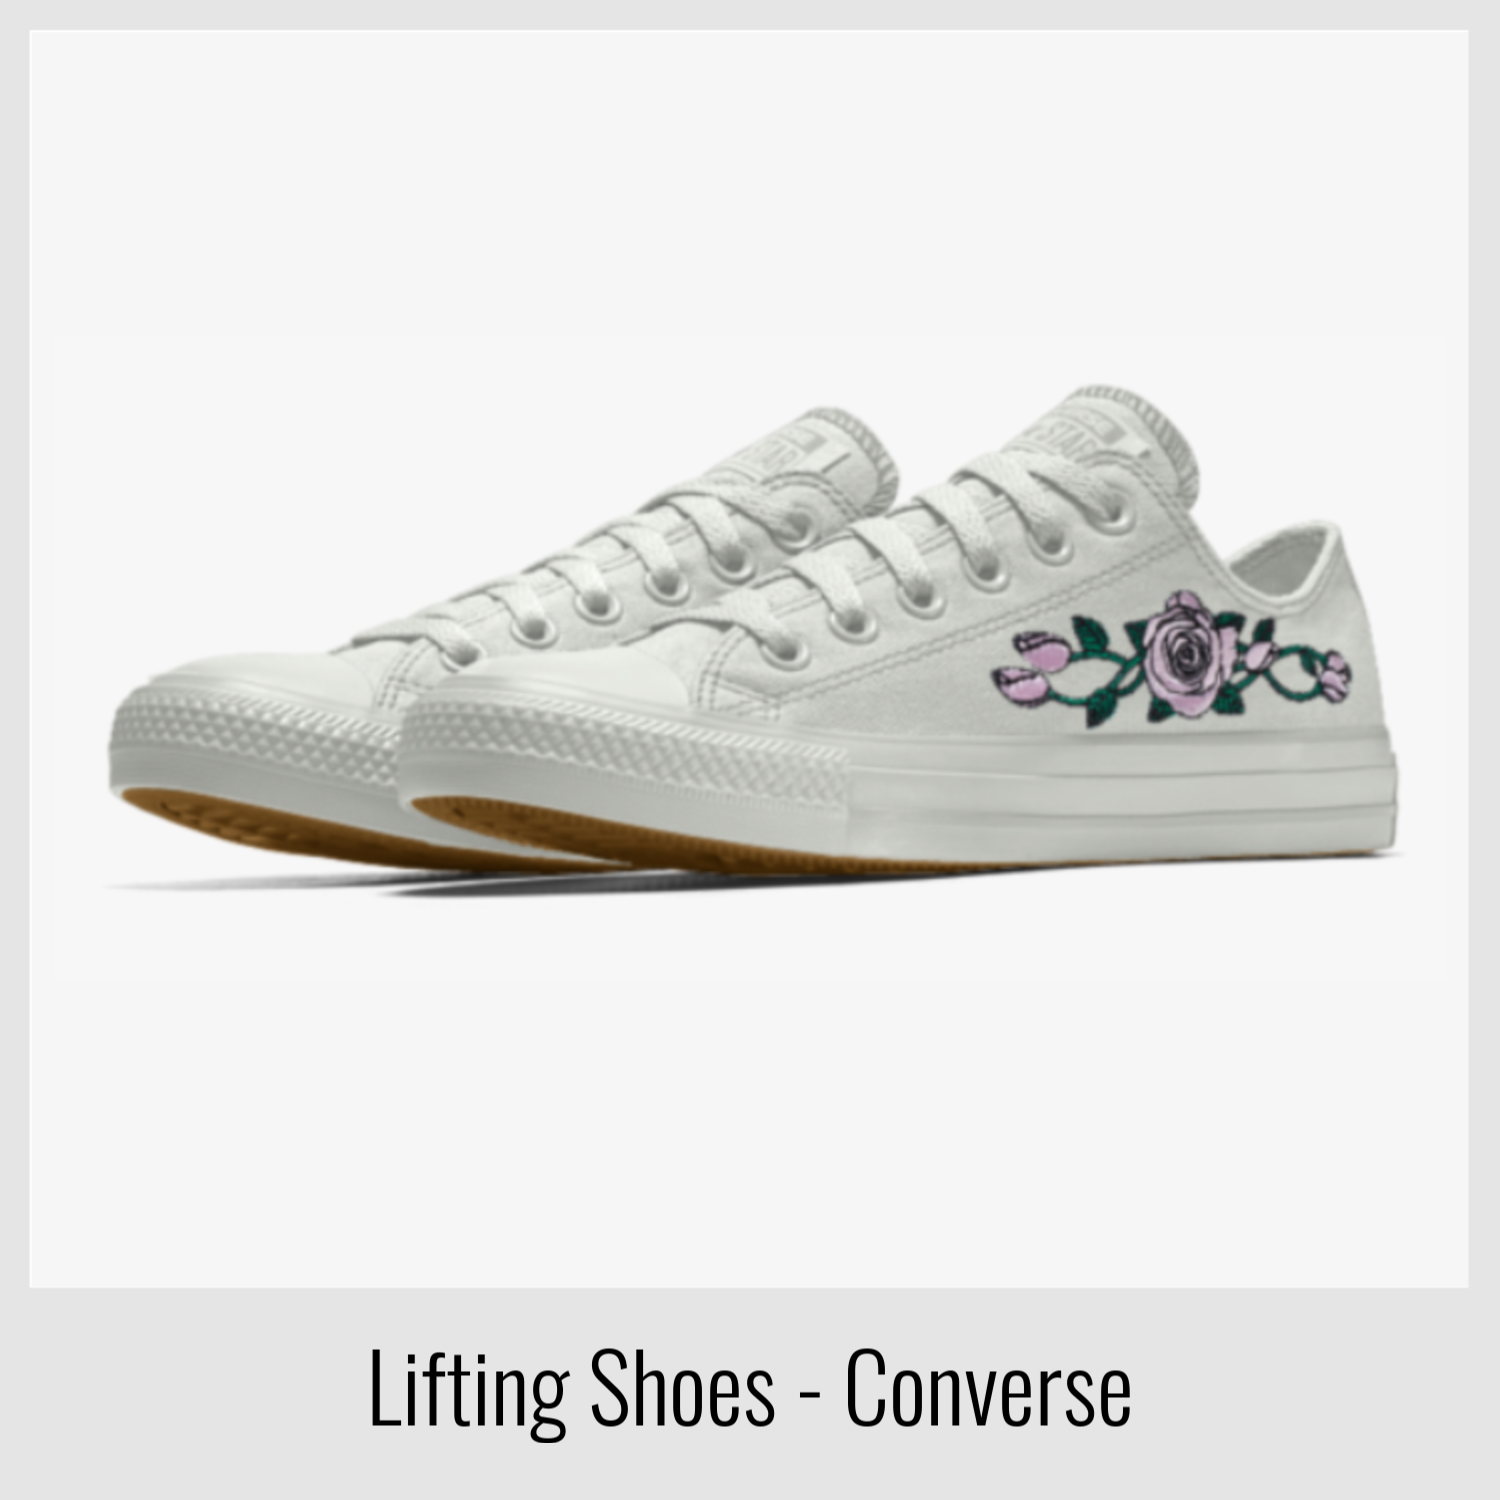 converse rose.png